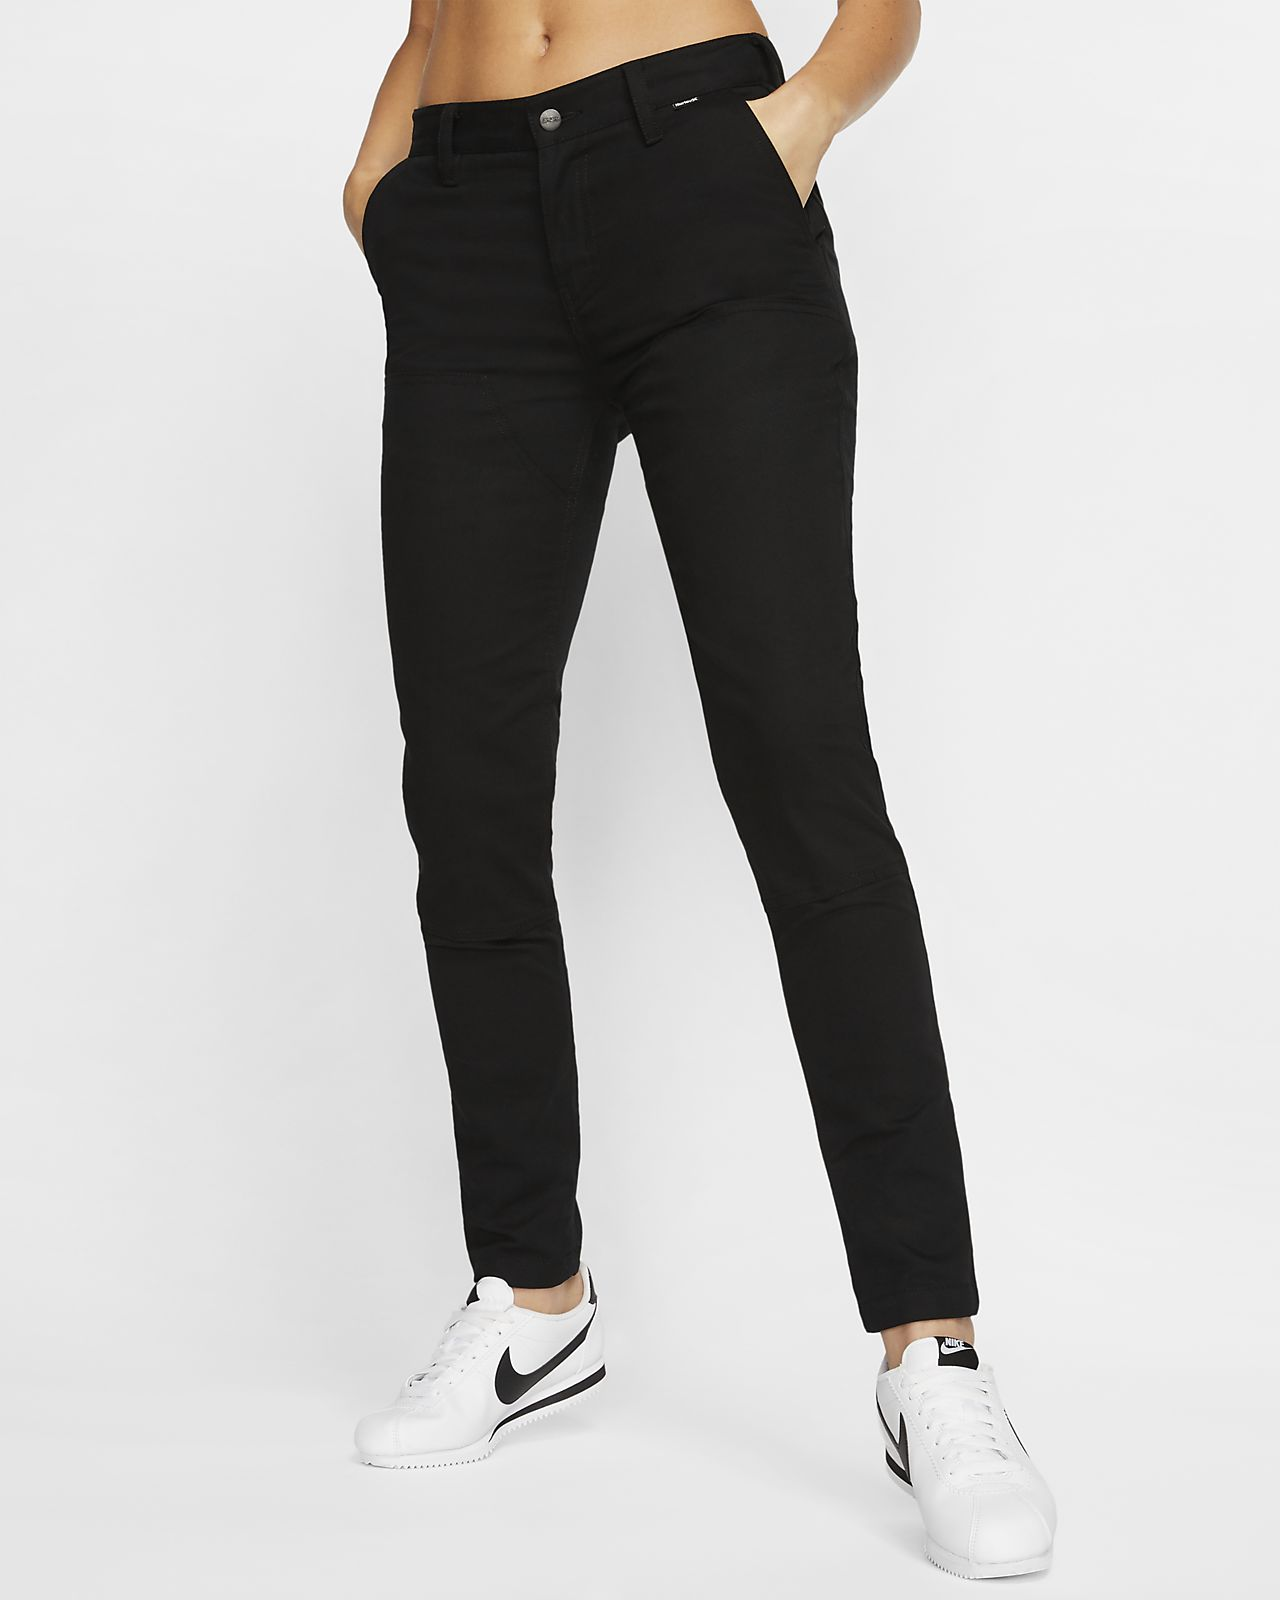 Hurley x Carhartt Skinny Double-Front Women's Trousers